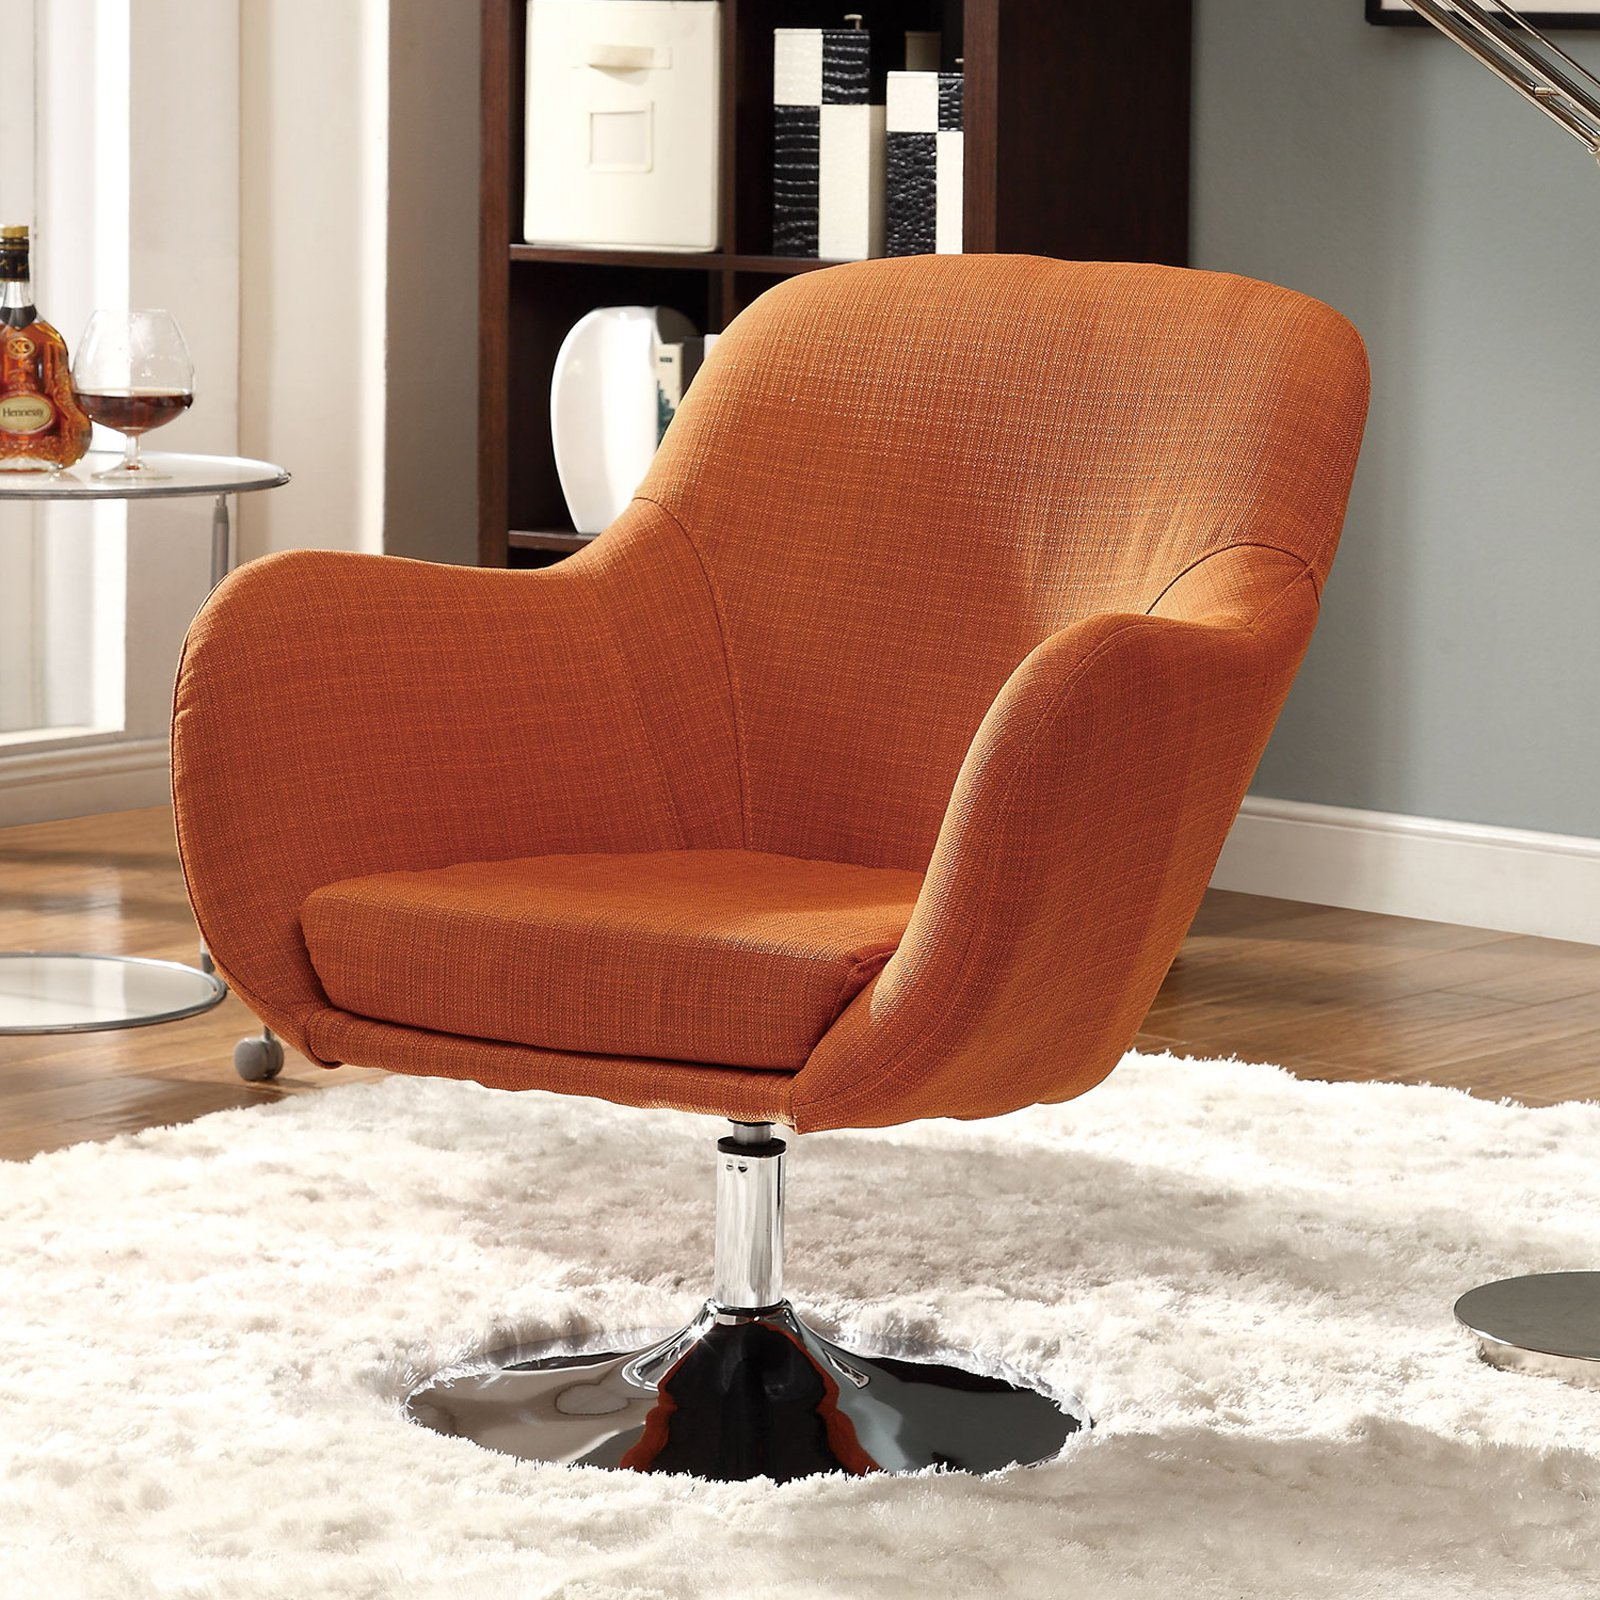 Coaster Company Accent Chair, Orange